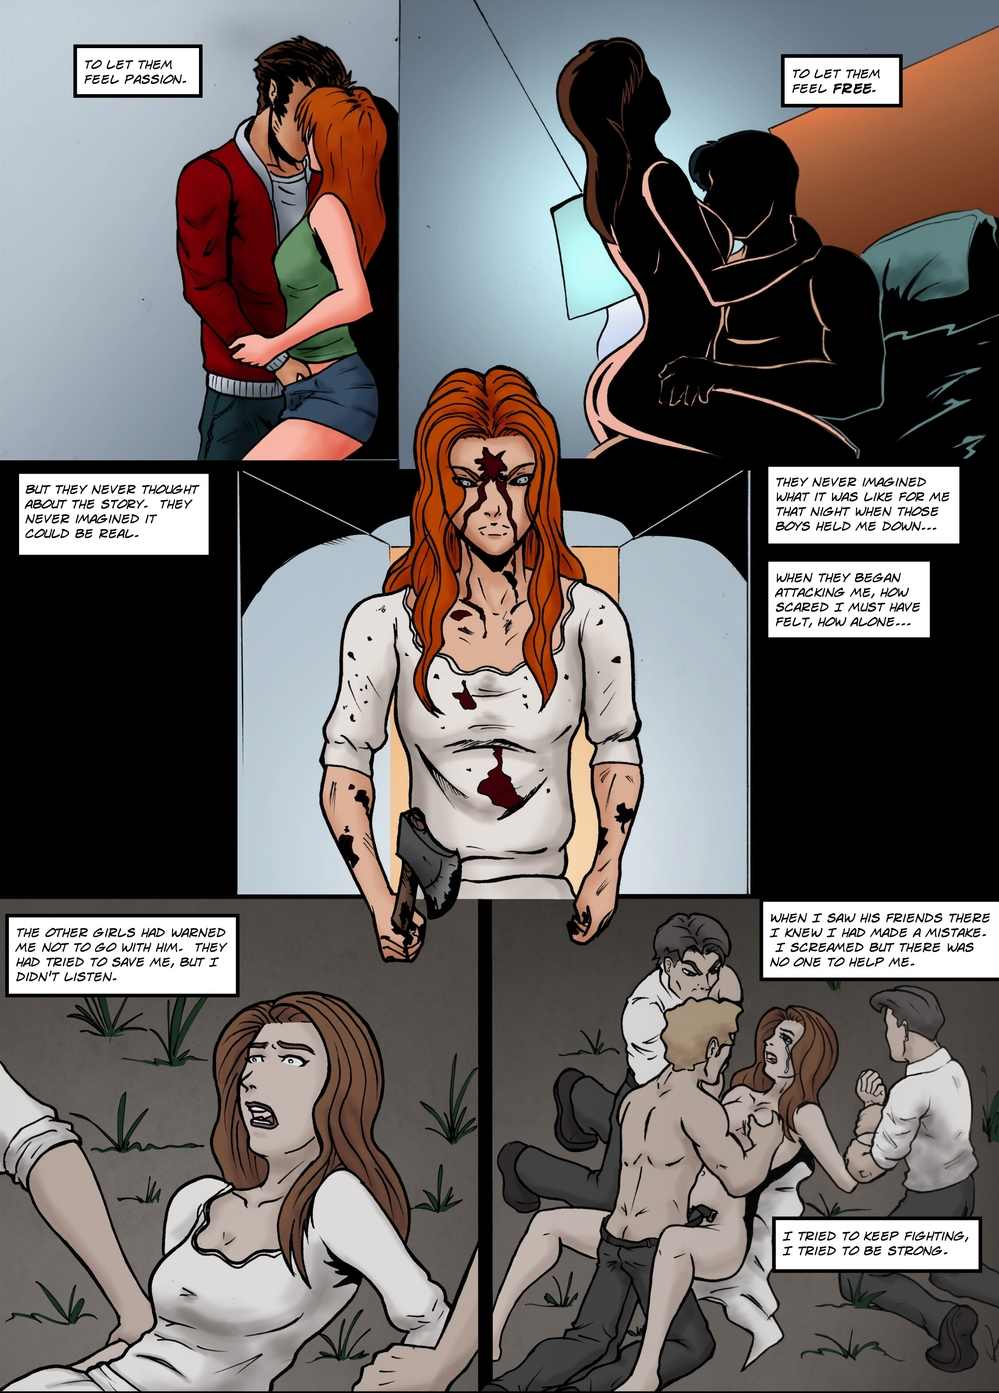 BLOODY MARY page 4 -- story 25 in The Book of Lies